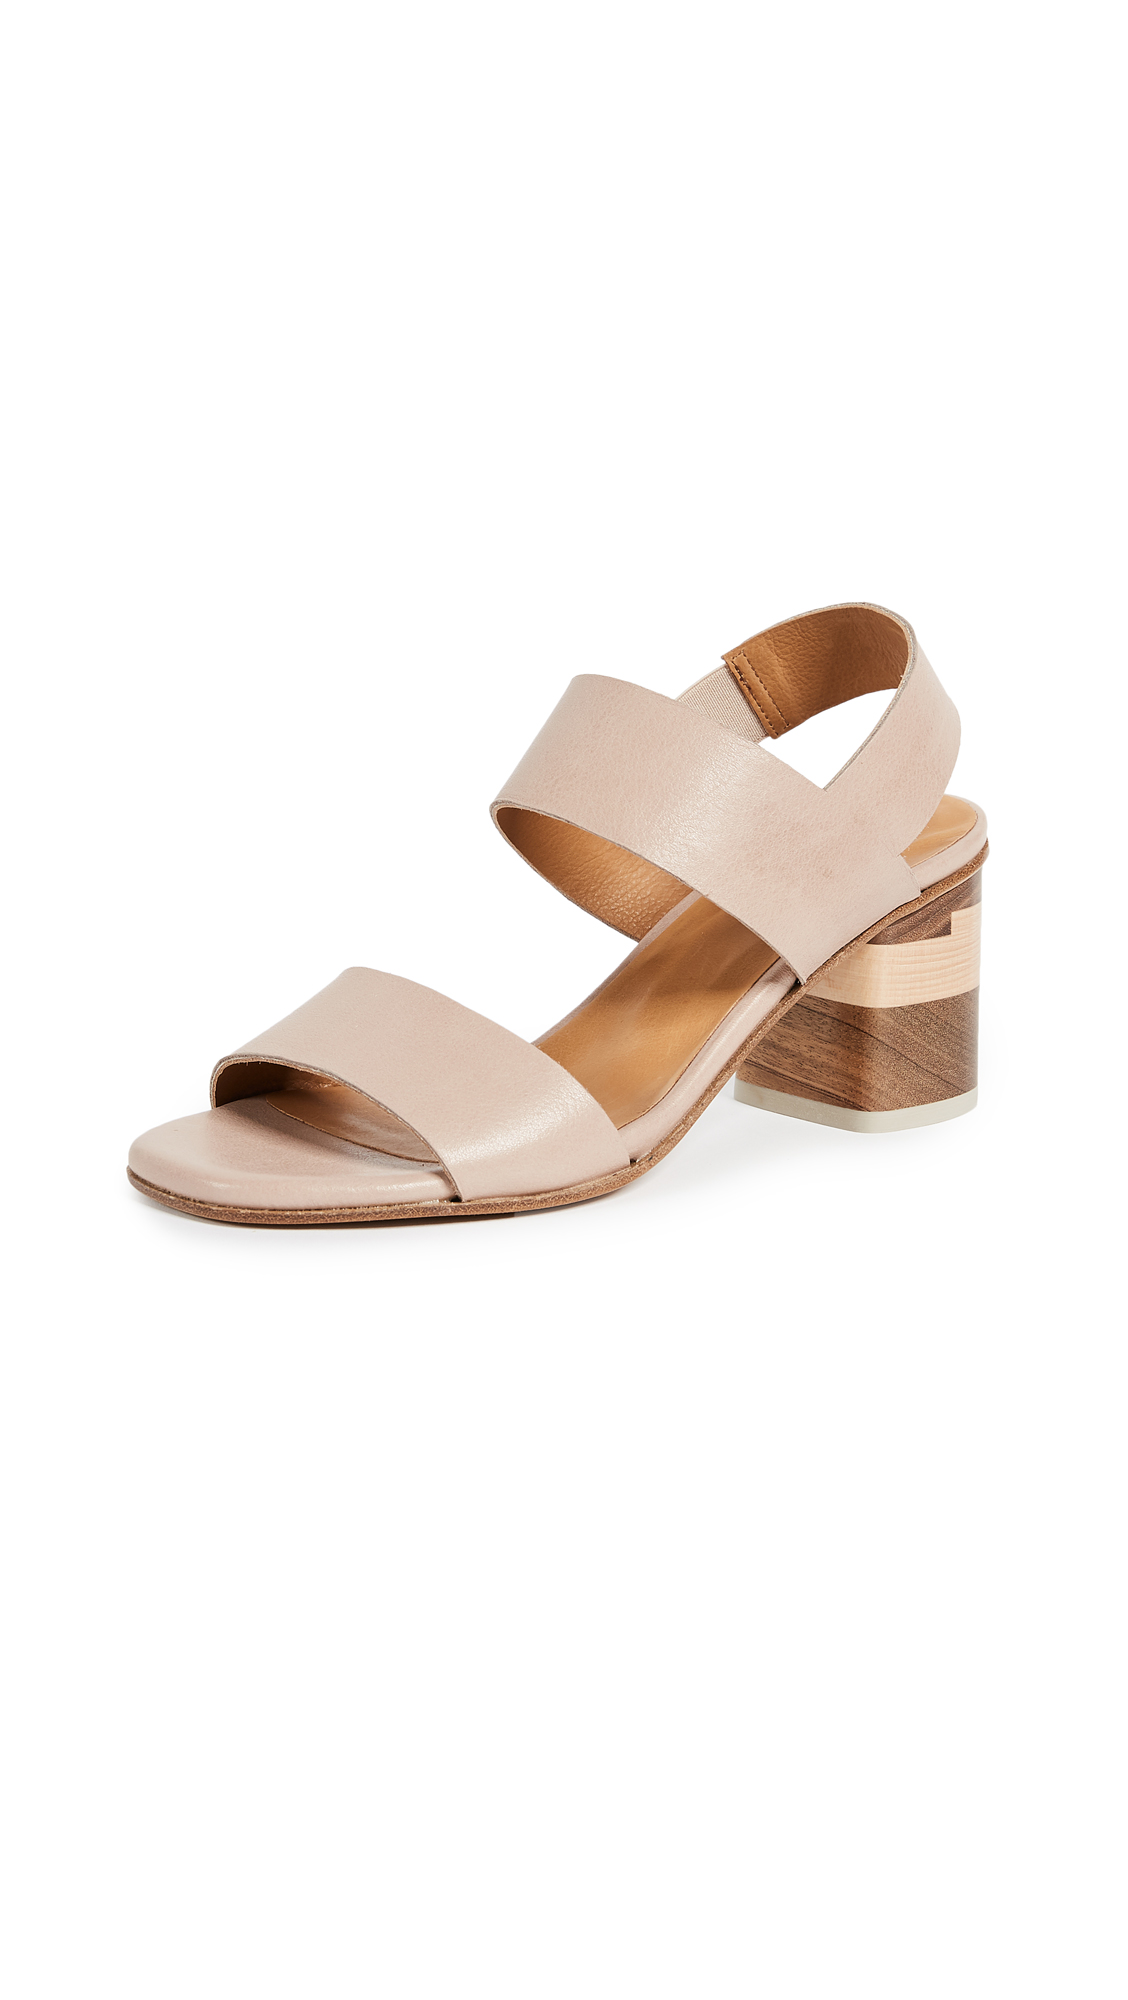 Coclico Shoes Bask Block Heel Sandals - Cathay Cocco